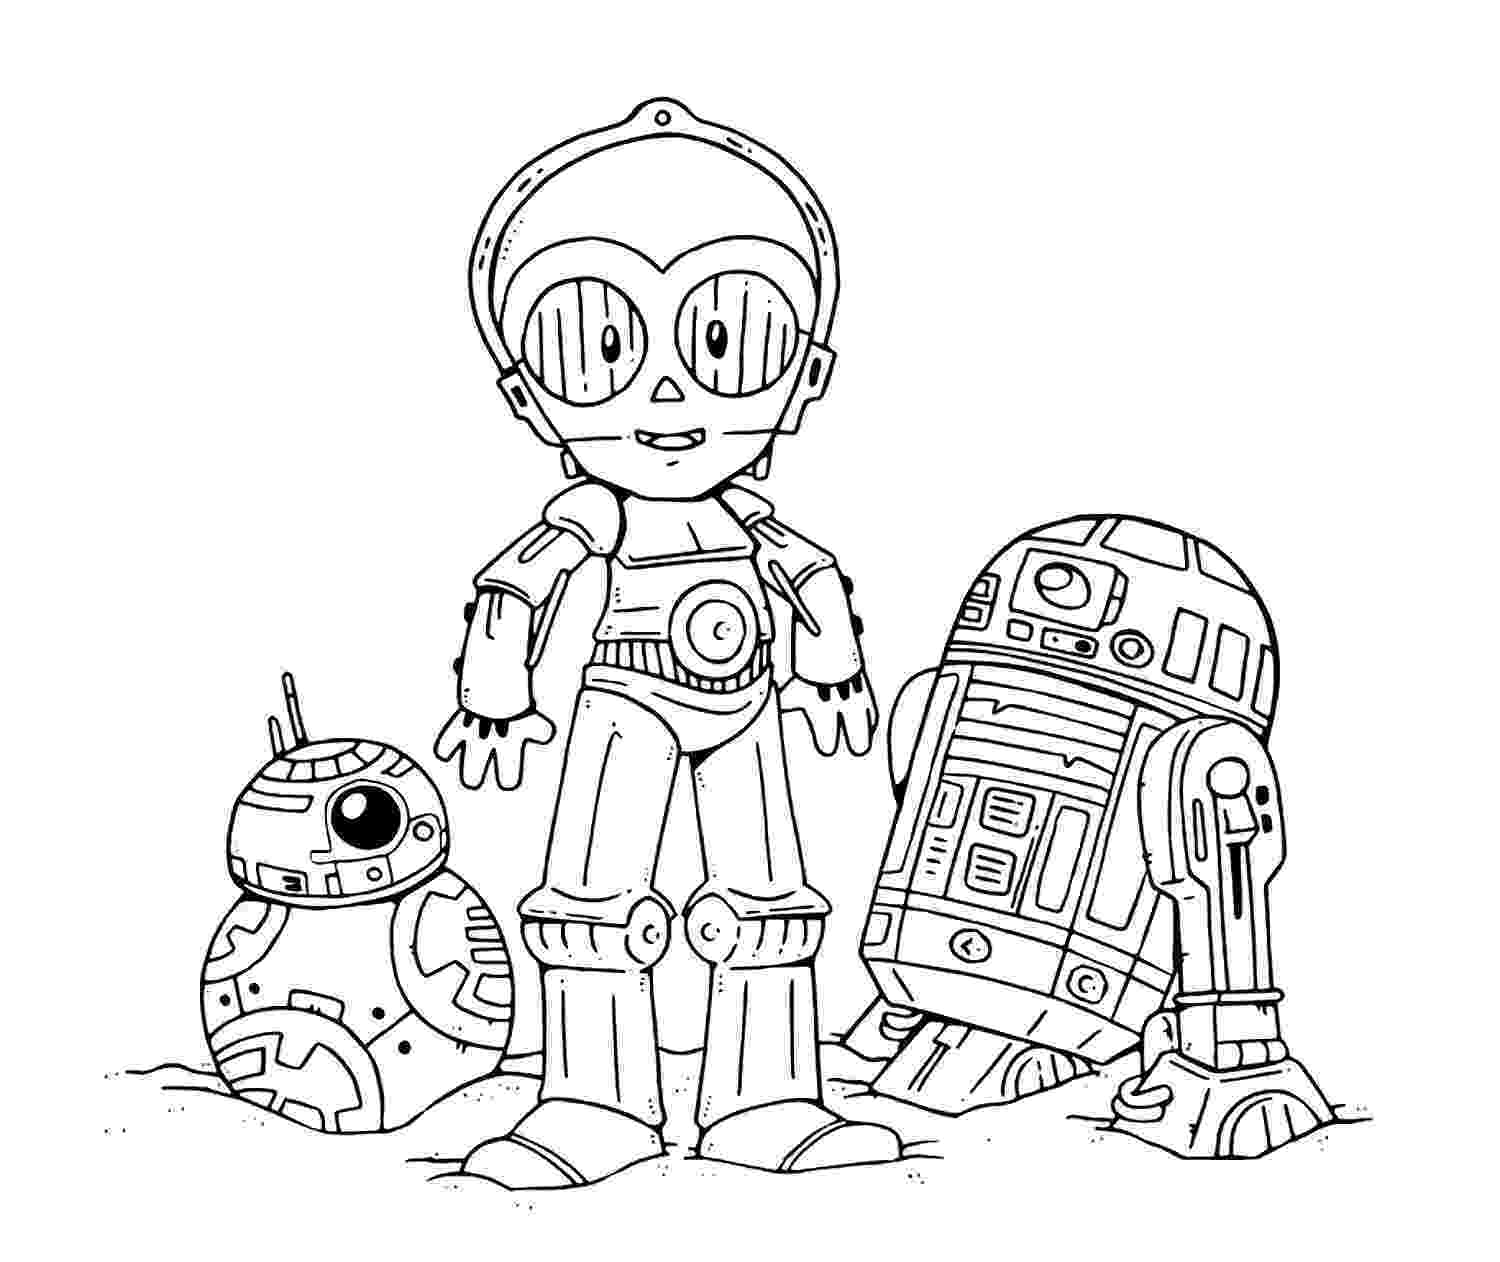 star wars the clone wars coloring pages to print polkadots on parade star wars the force awakens coloring wars star the pages clone to wars print coloring